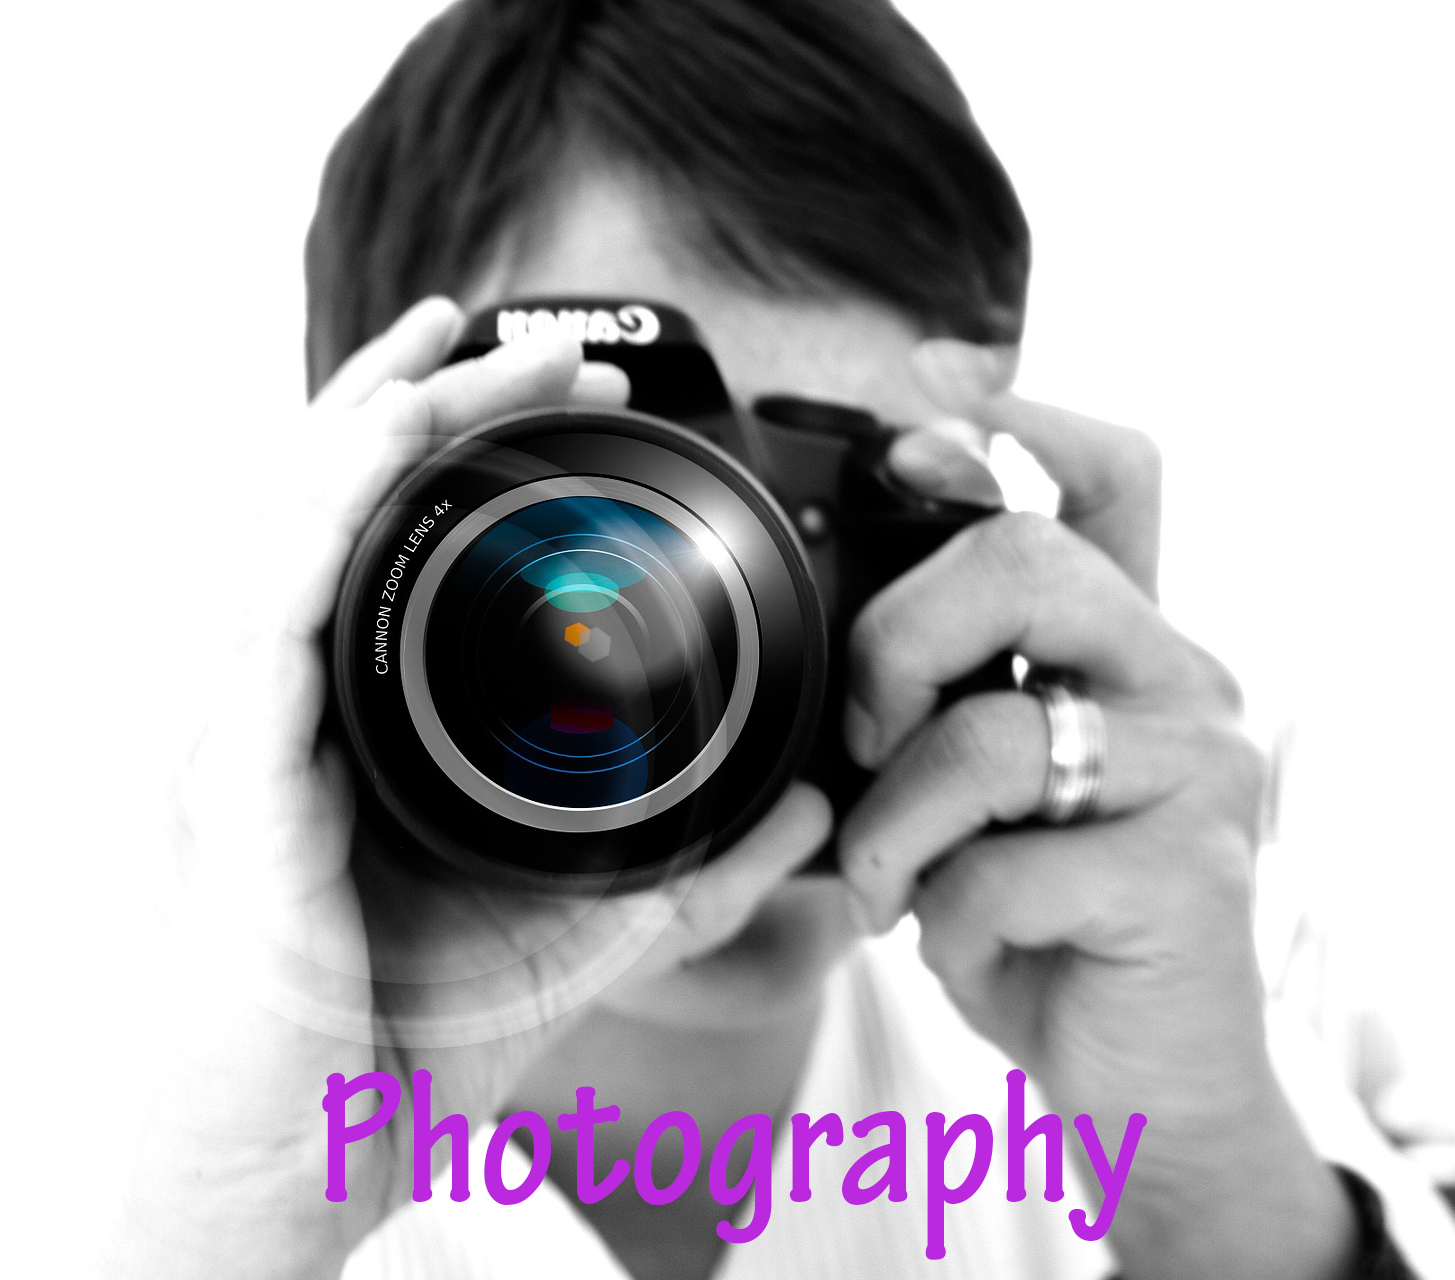 uploads/category/Photography